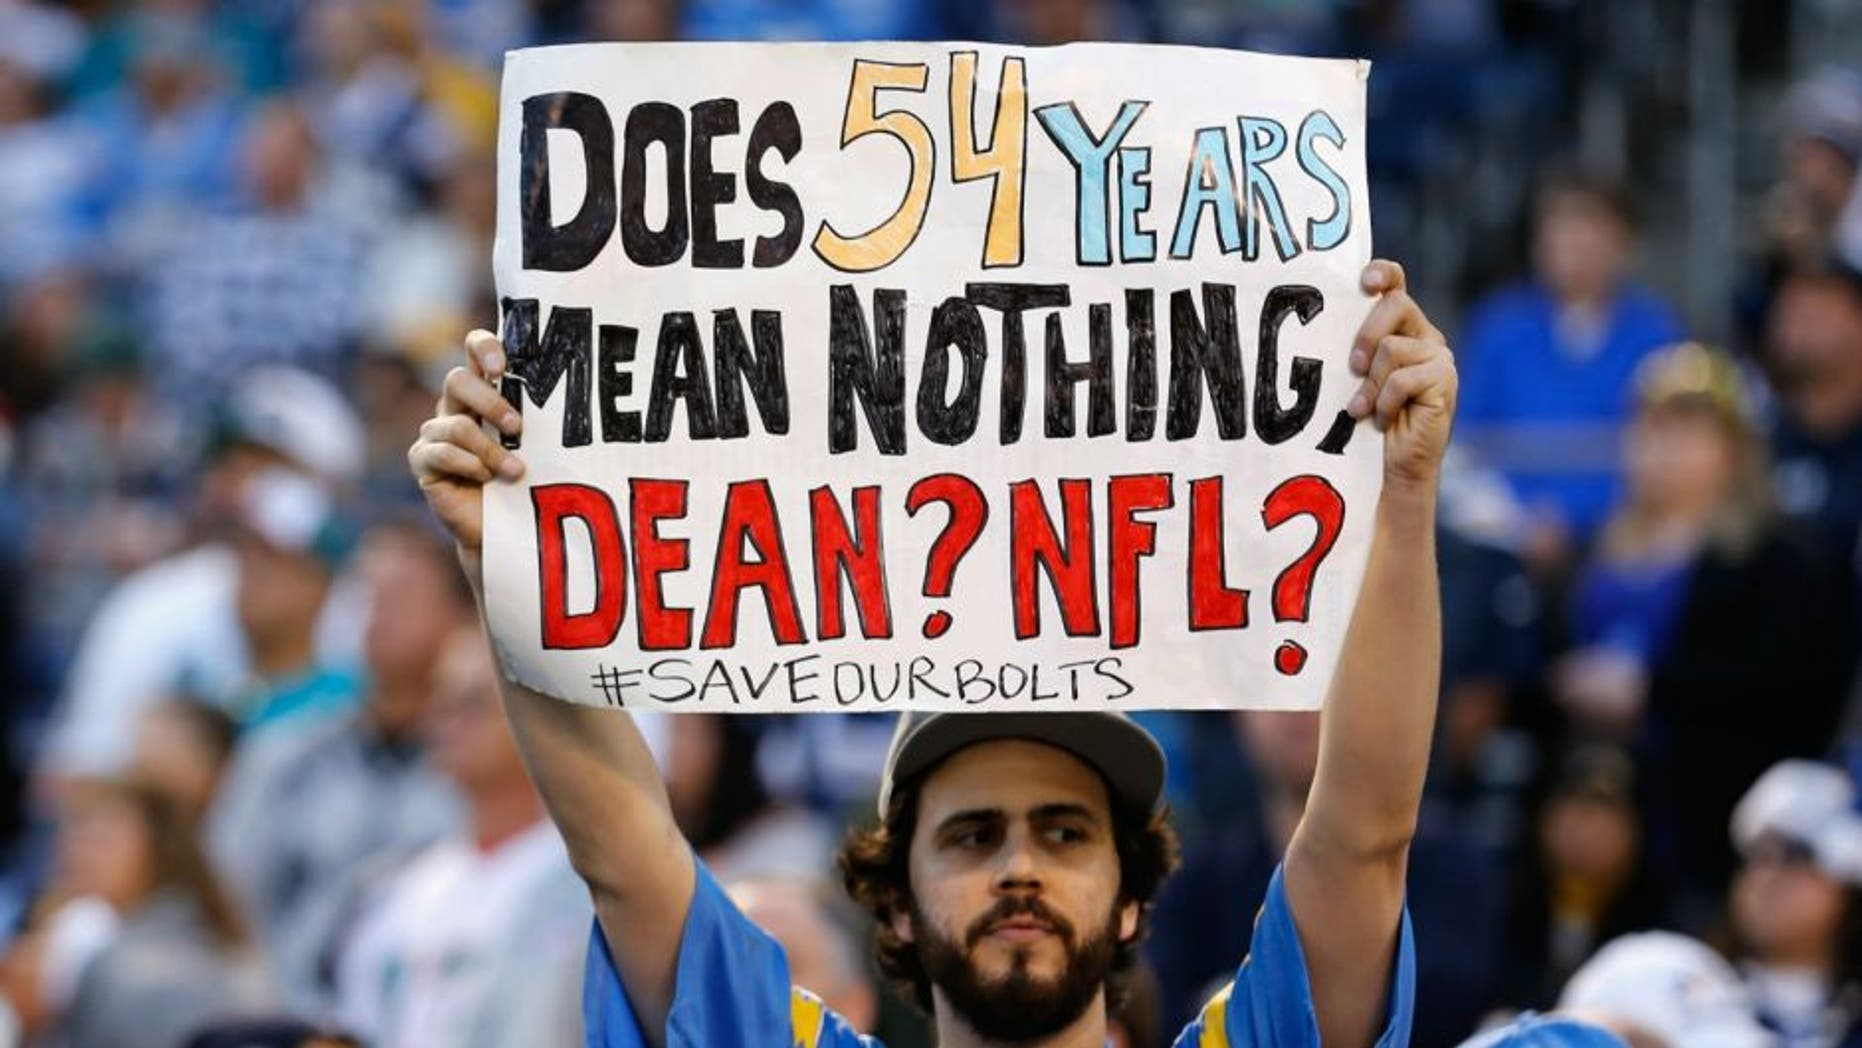 at Qualcomm Stadium on December 20, 2015 in San Diego, California.,SAN DIEGO, CA - DECEMBER 20: A fan holds a sign supporting the San Diego Chargers during a game against the Miami Dolphins at Qualcomm Stadium on December 20, 2015 in San Diego, California. (Photo by Sean M. Haffey/Getty Images)